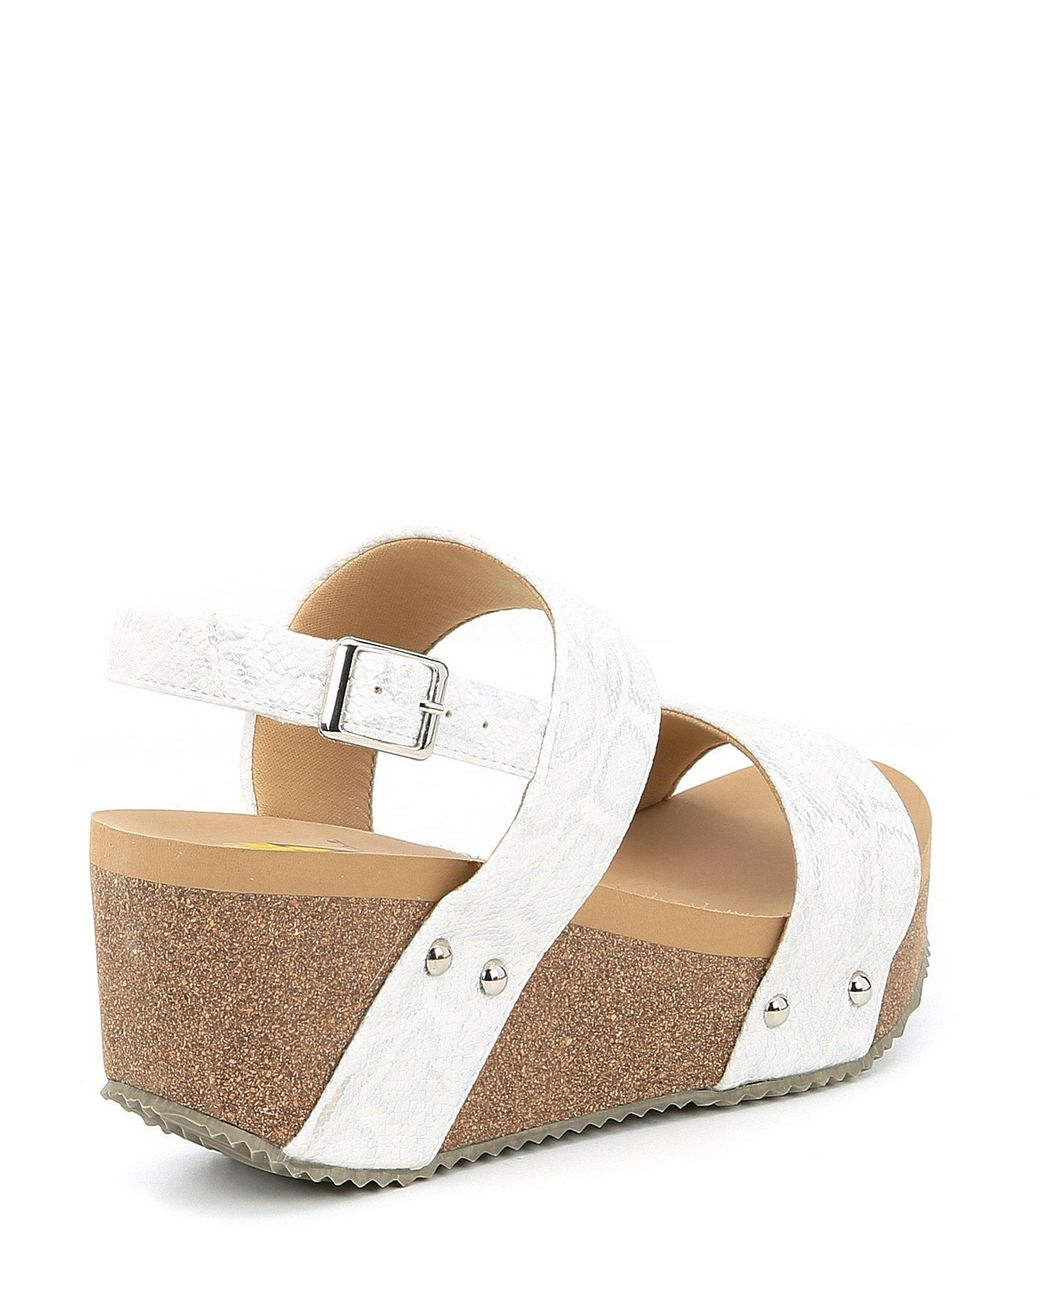 Love White Summer Wedge Sandals Snake Women's Sling Banded WD9IYHeE2b